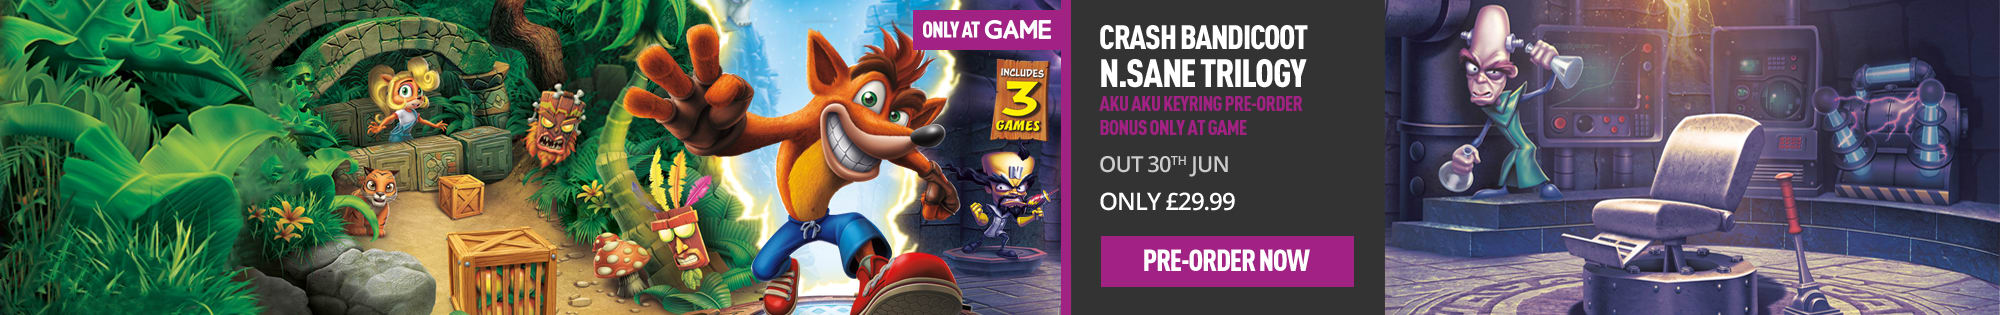 Crash Bandicoot- E3 2017